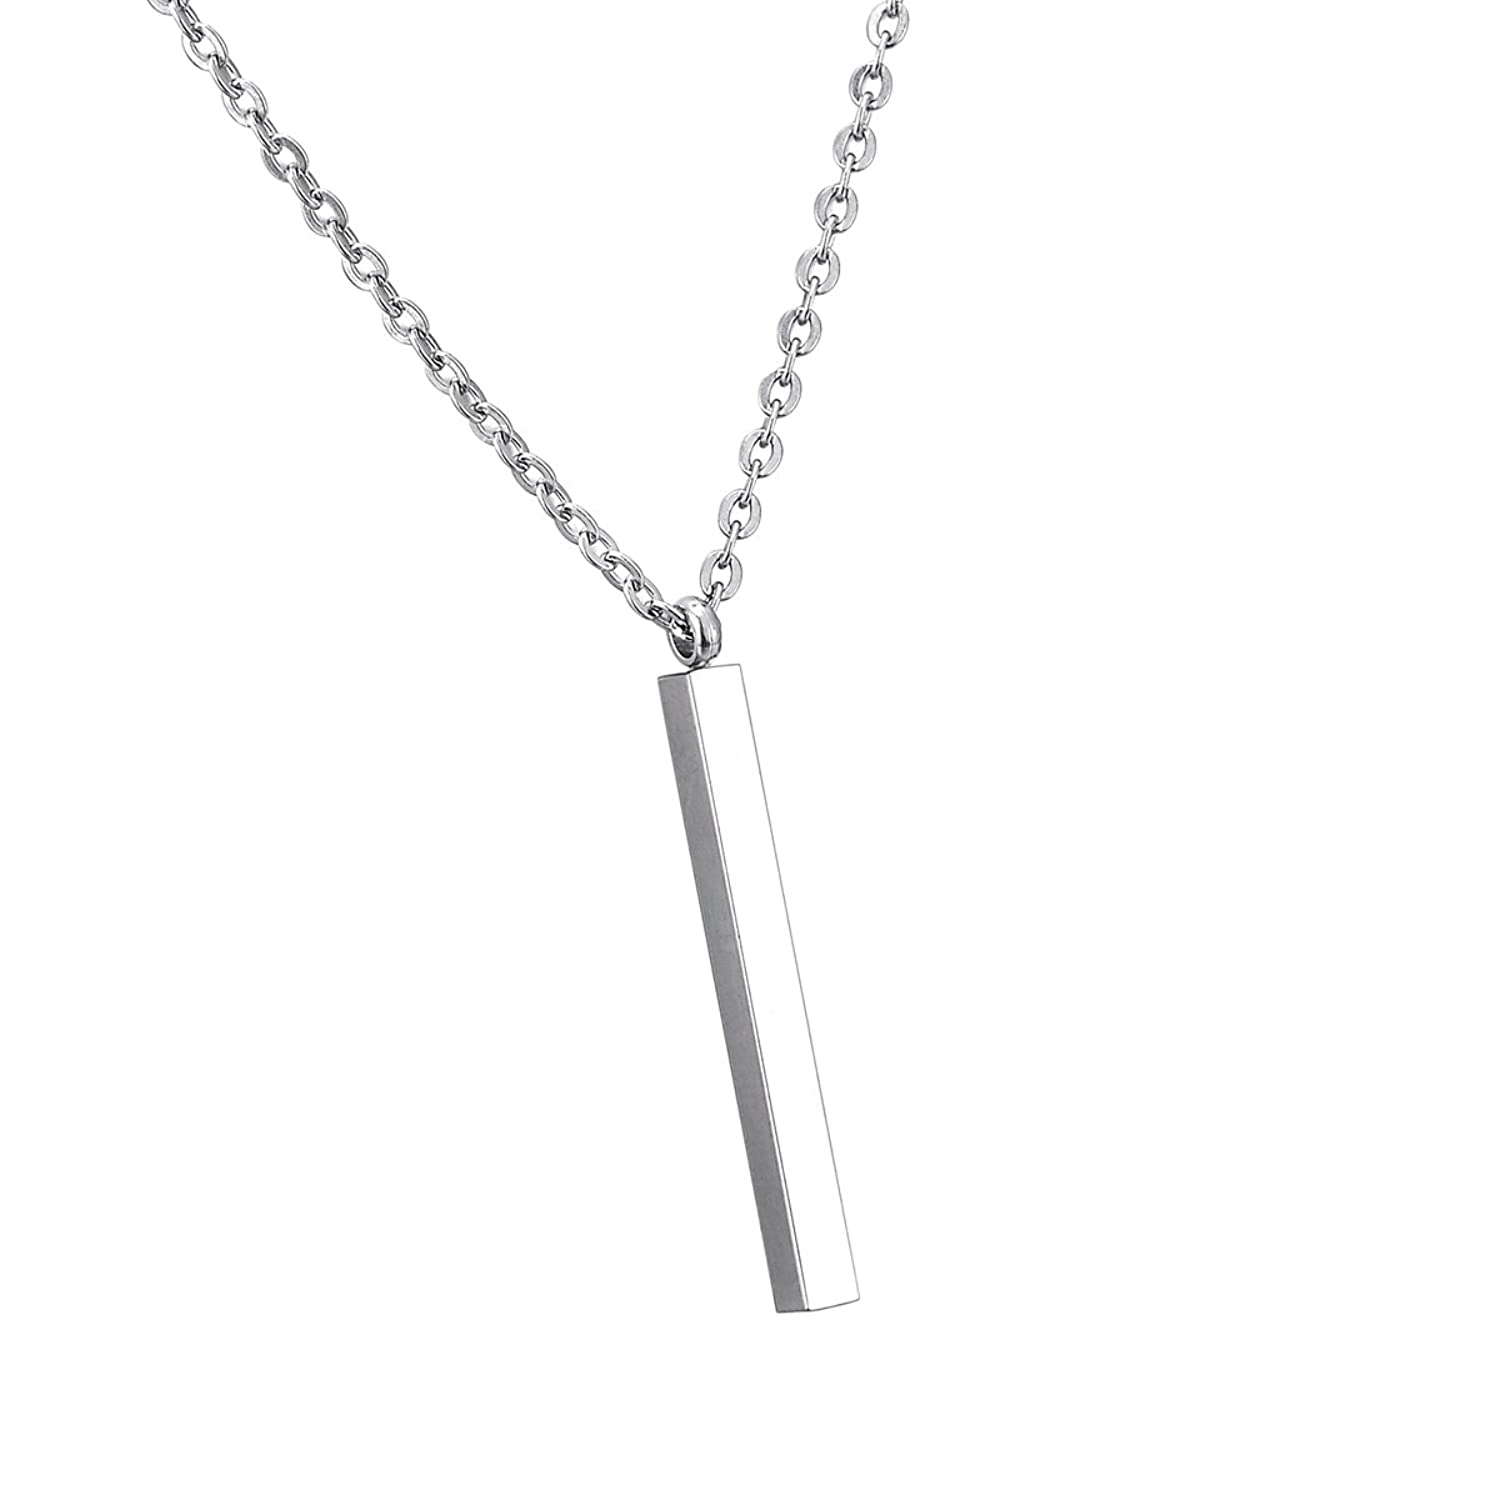 Fashion HW Sterling Silver Necklace Simple Vertical Bar Pendant S925 Women Chain, 28+2